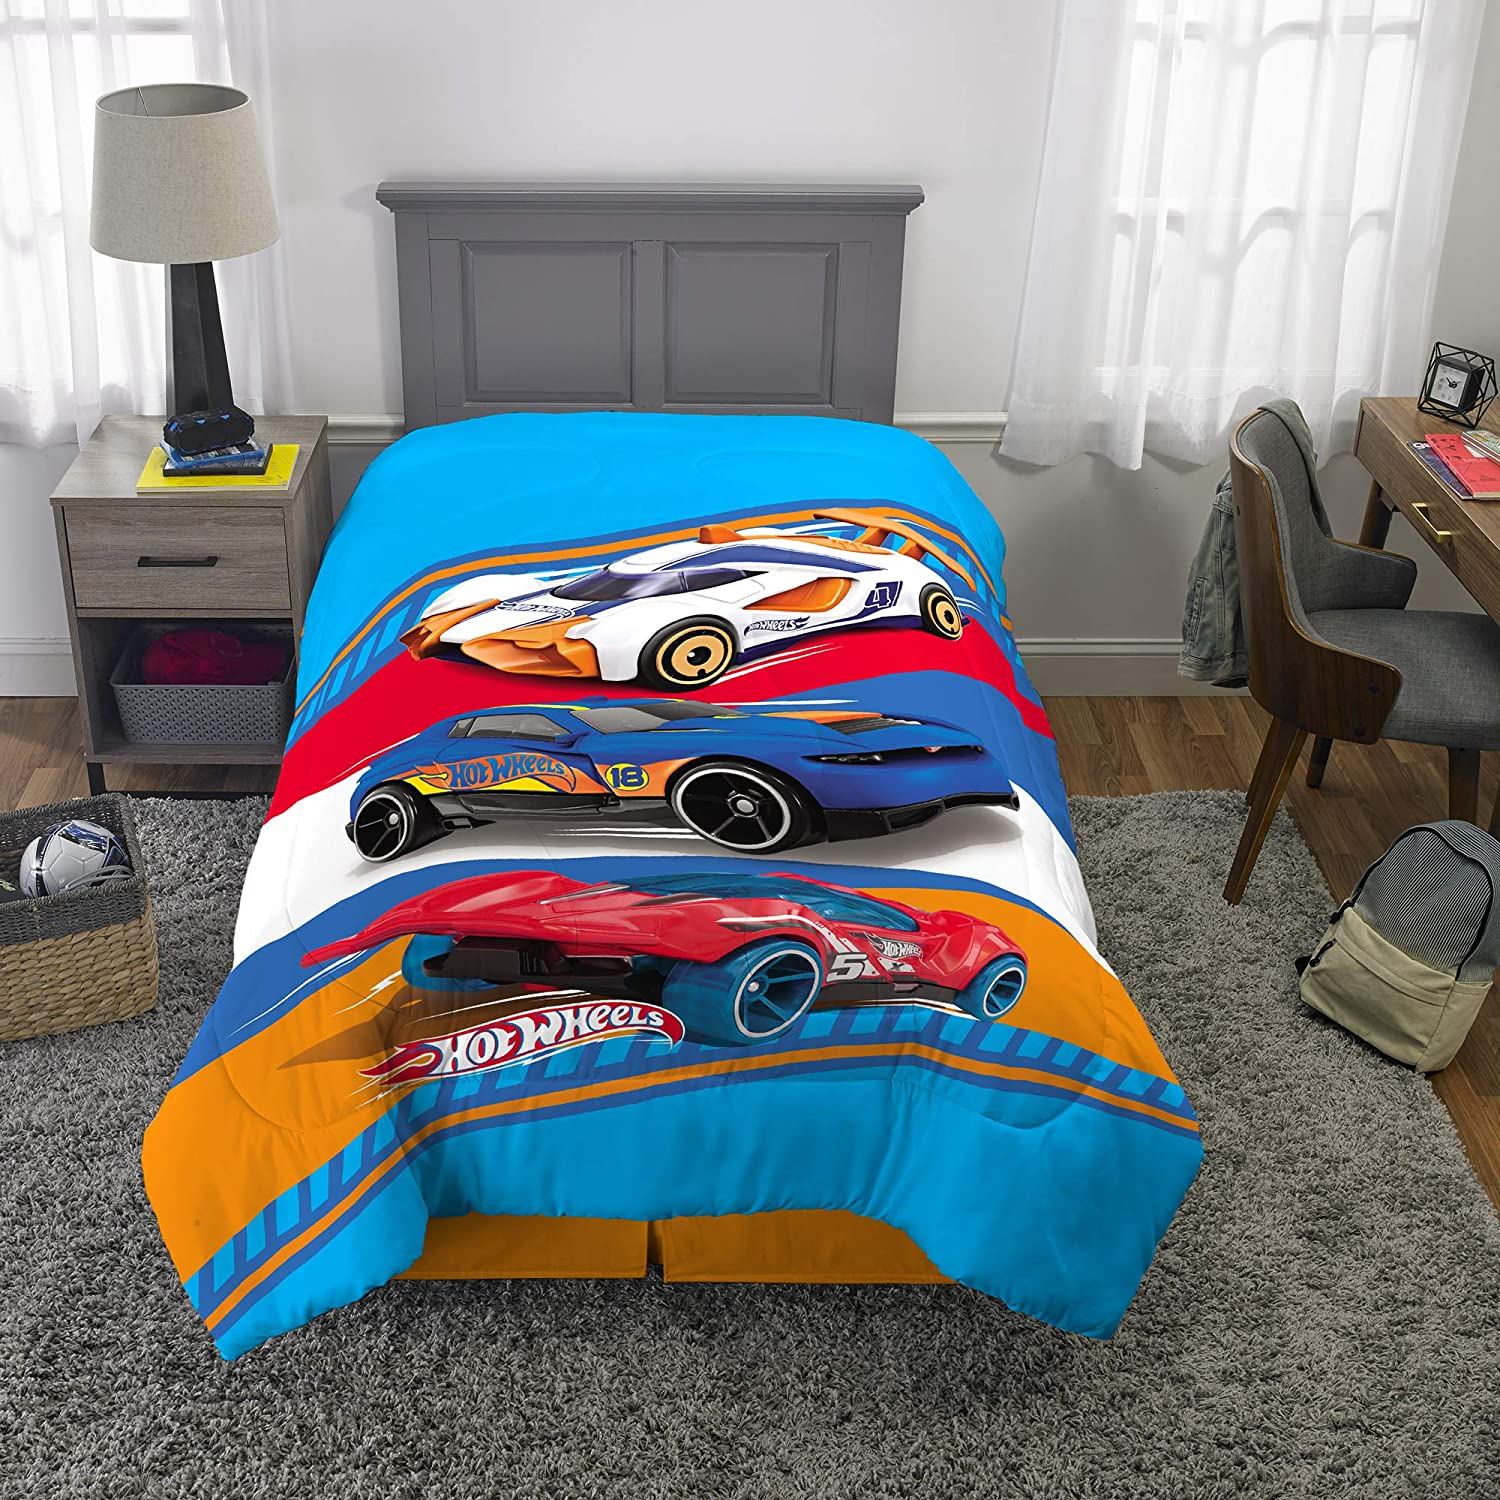 "Franco Kids Bedding Super Soft Microfiber Reversible Comforter, Twin/Full Size 72"" x 86"", Hot Wheels"